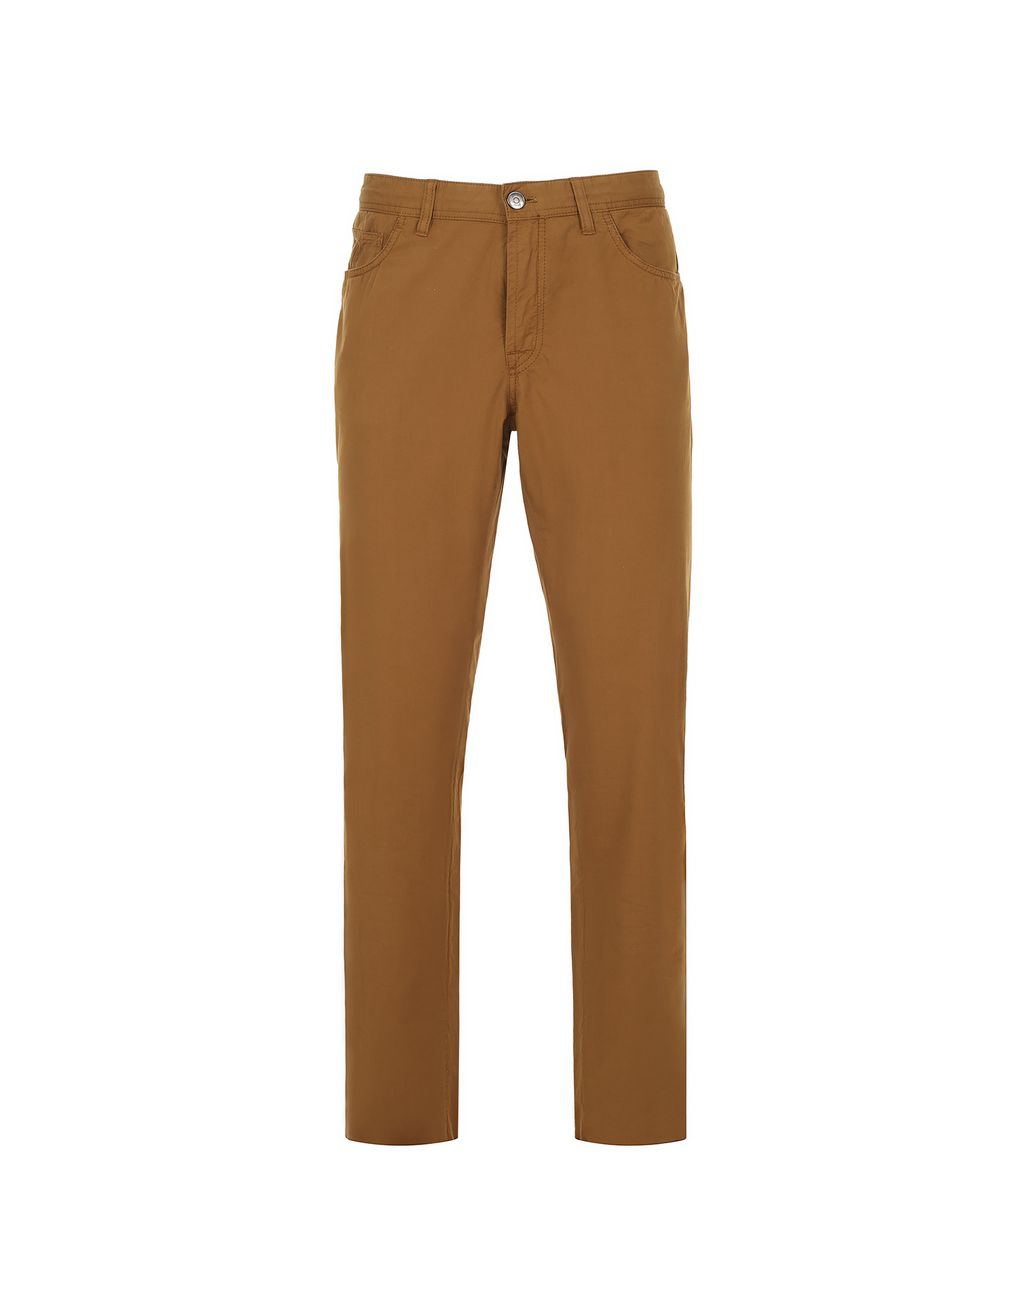 BRIONI Mustard Chamonix Five-Pocket Pants  Trousers Man f